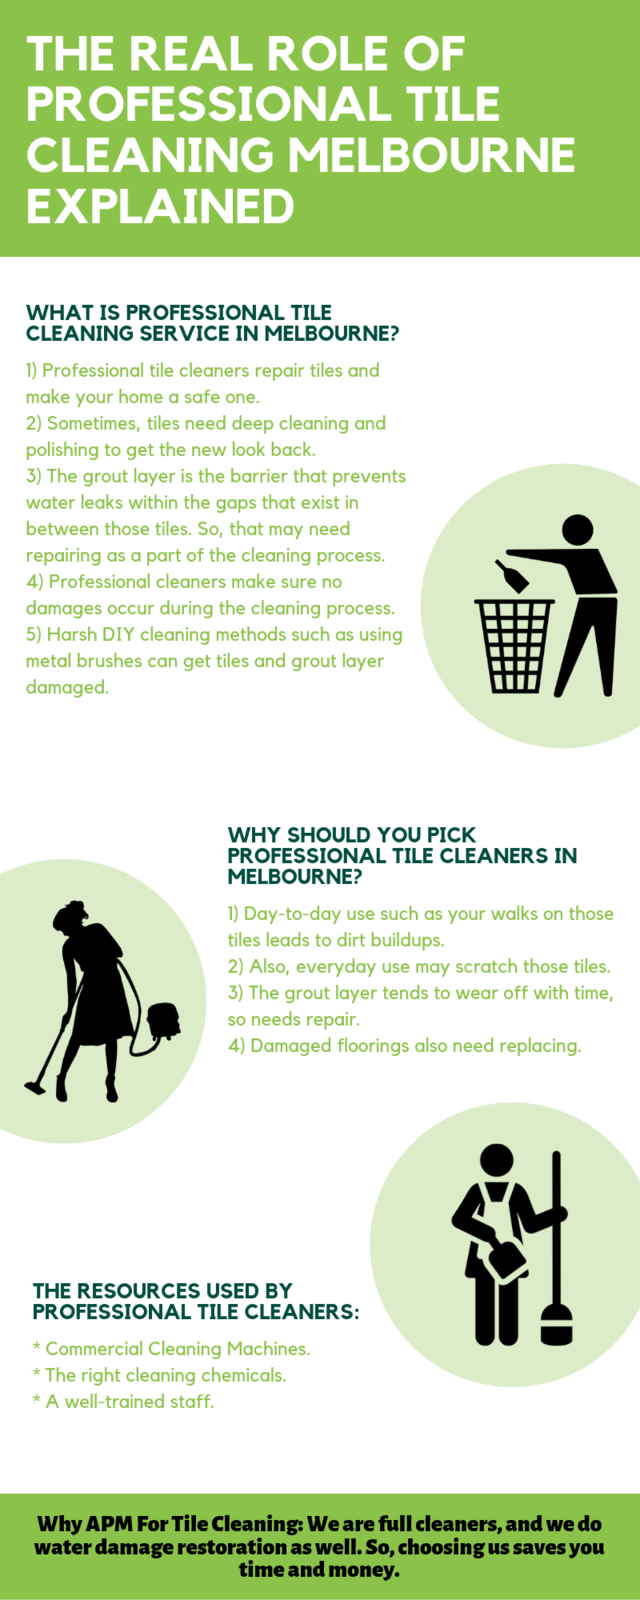 The deep meaning of office cleaning explained in detail (5)